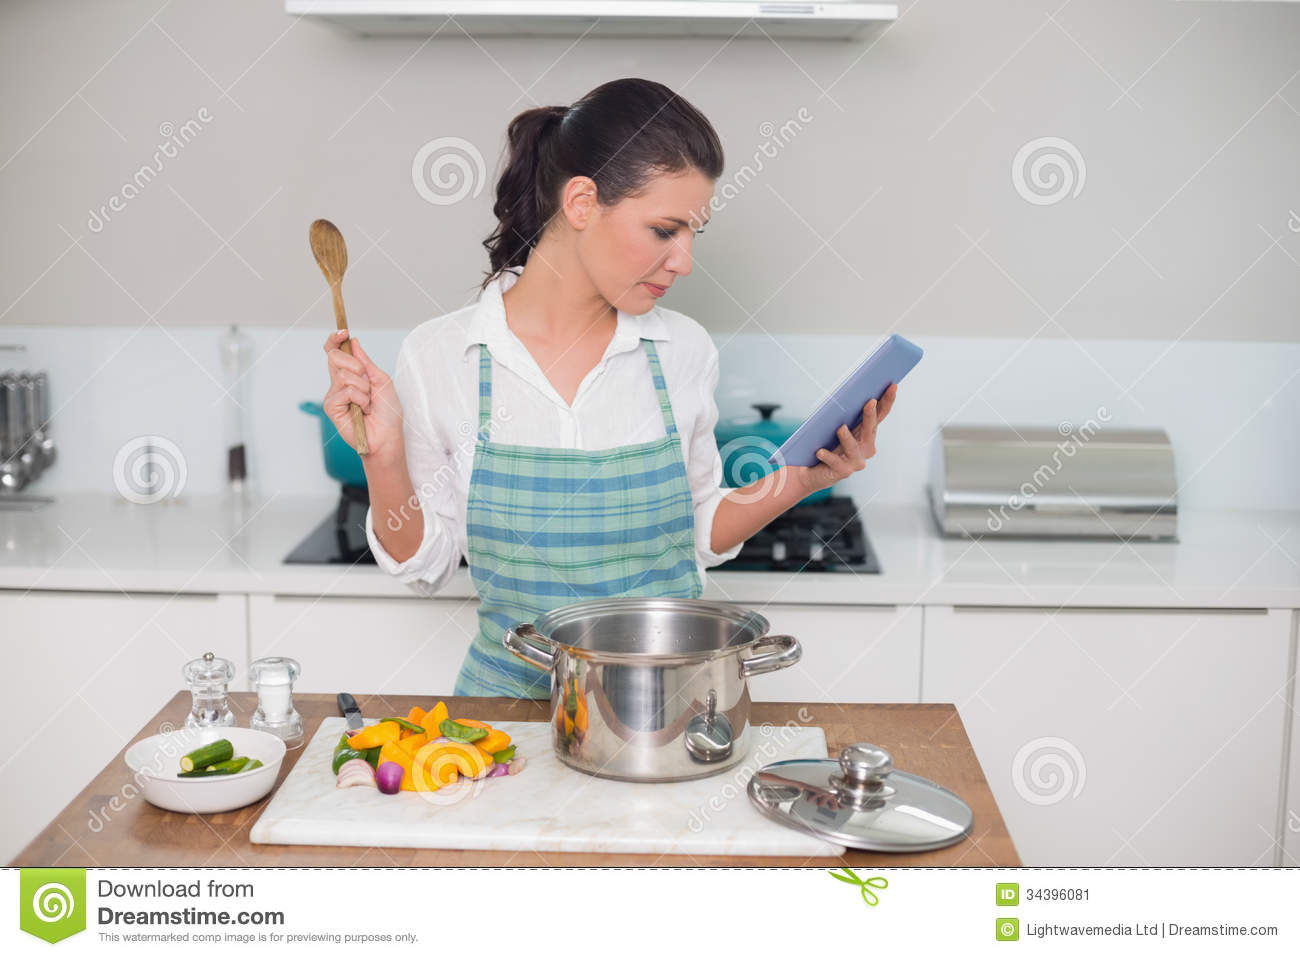 Focused Gorgeous Woman Wearing Apron Using Tablet While